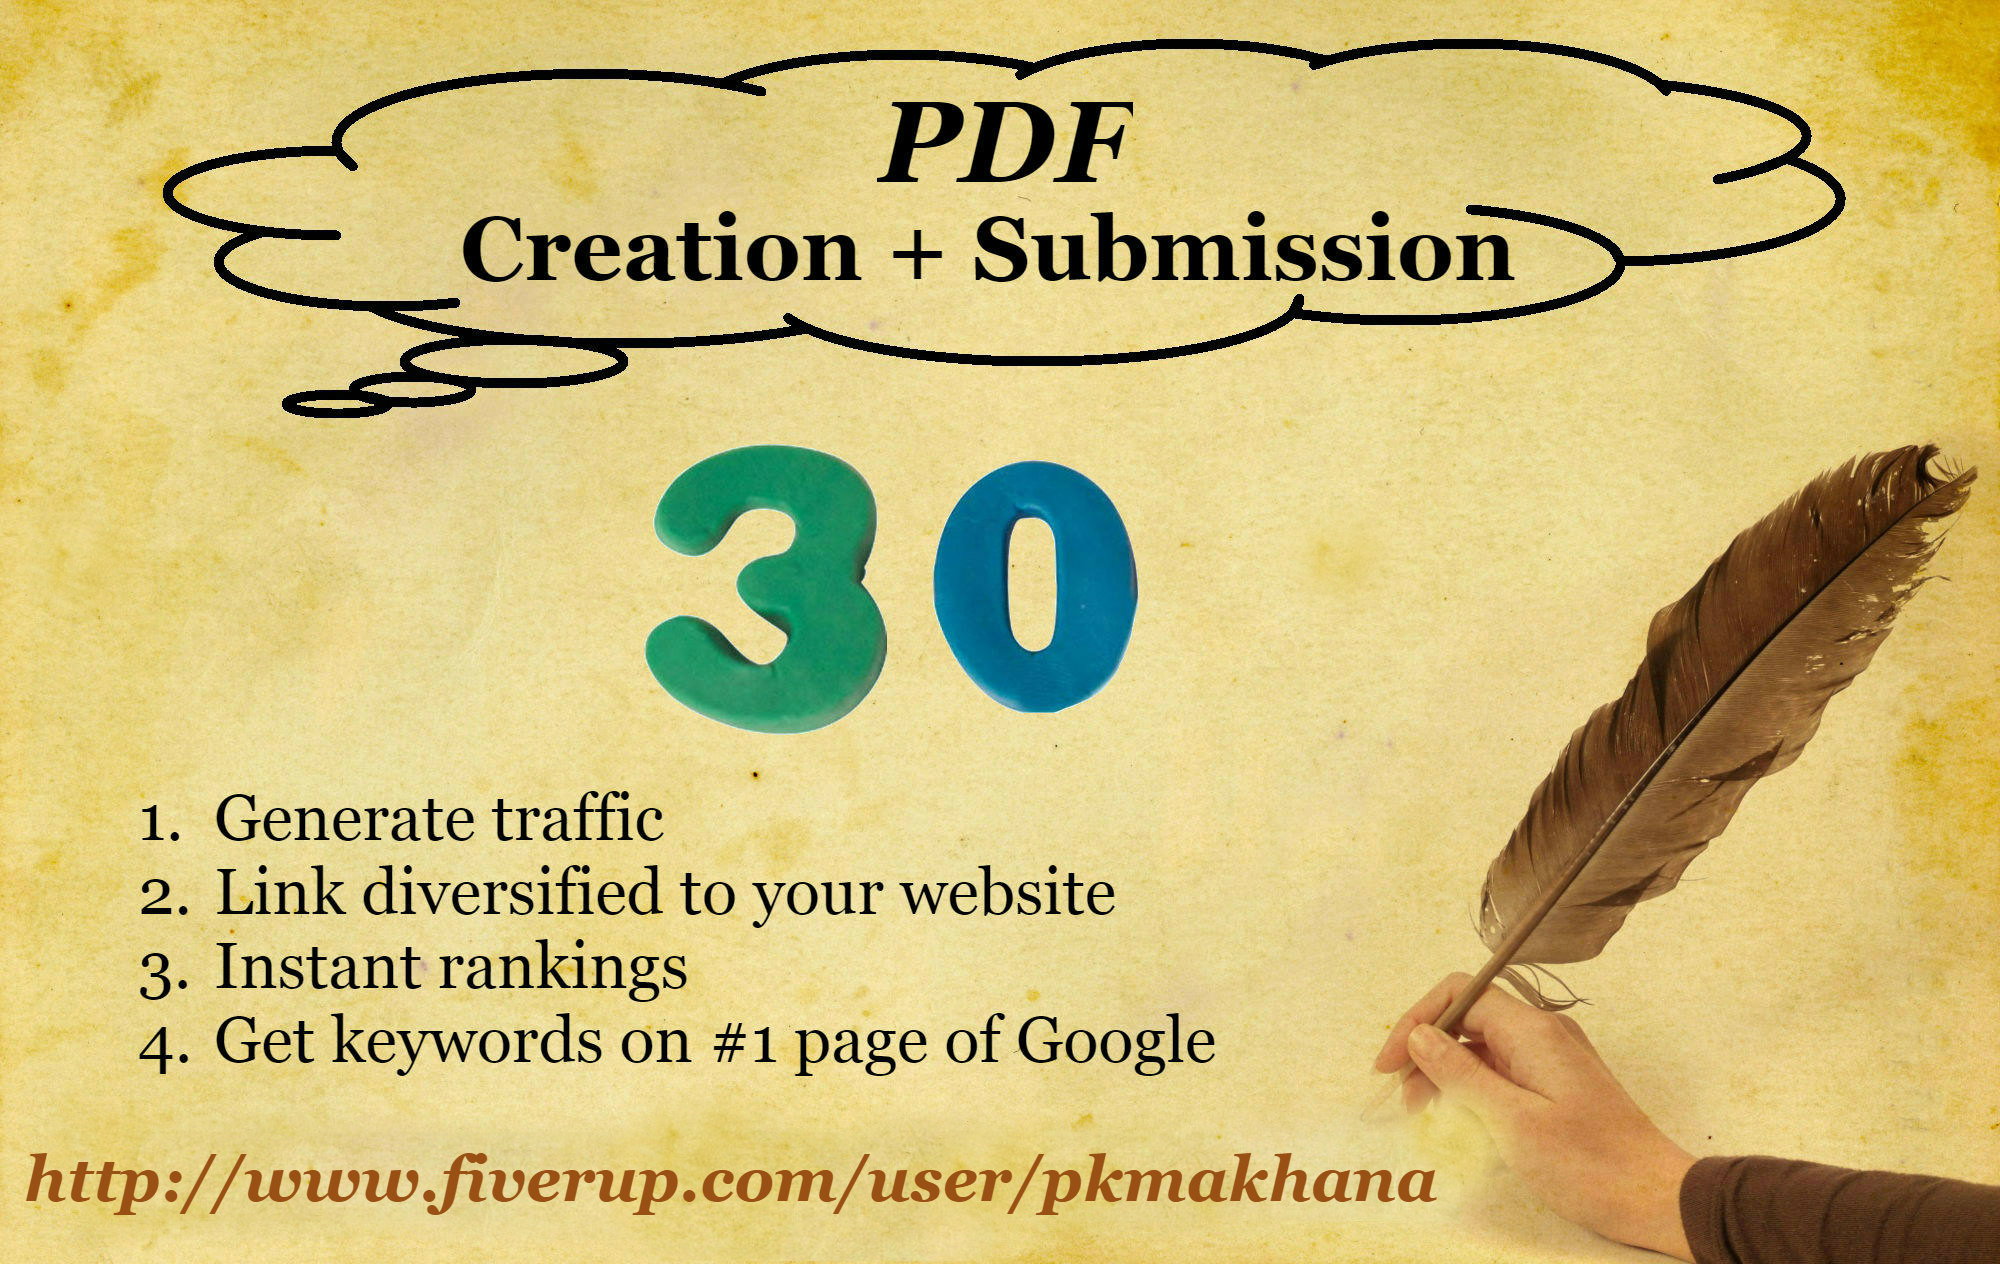 create a PDF and submit it on 30 document sharing sites